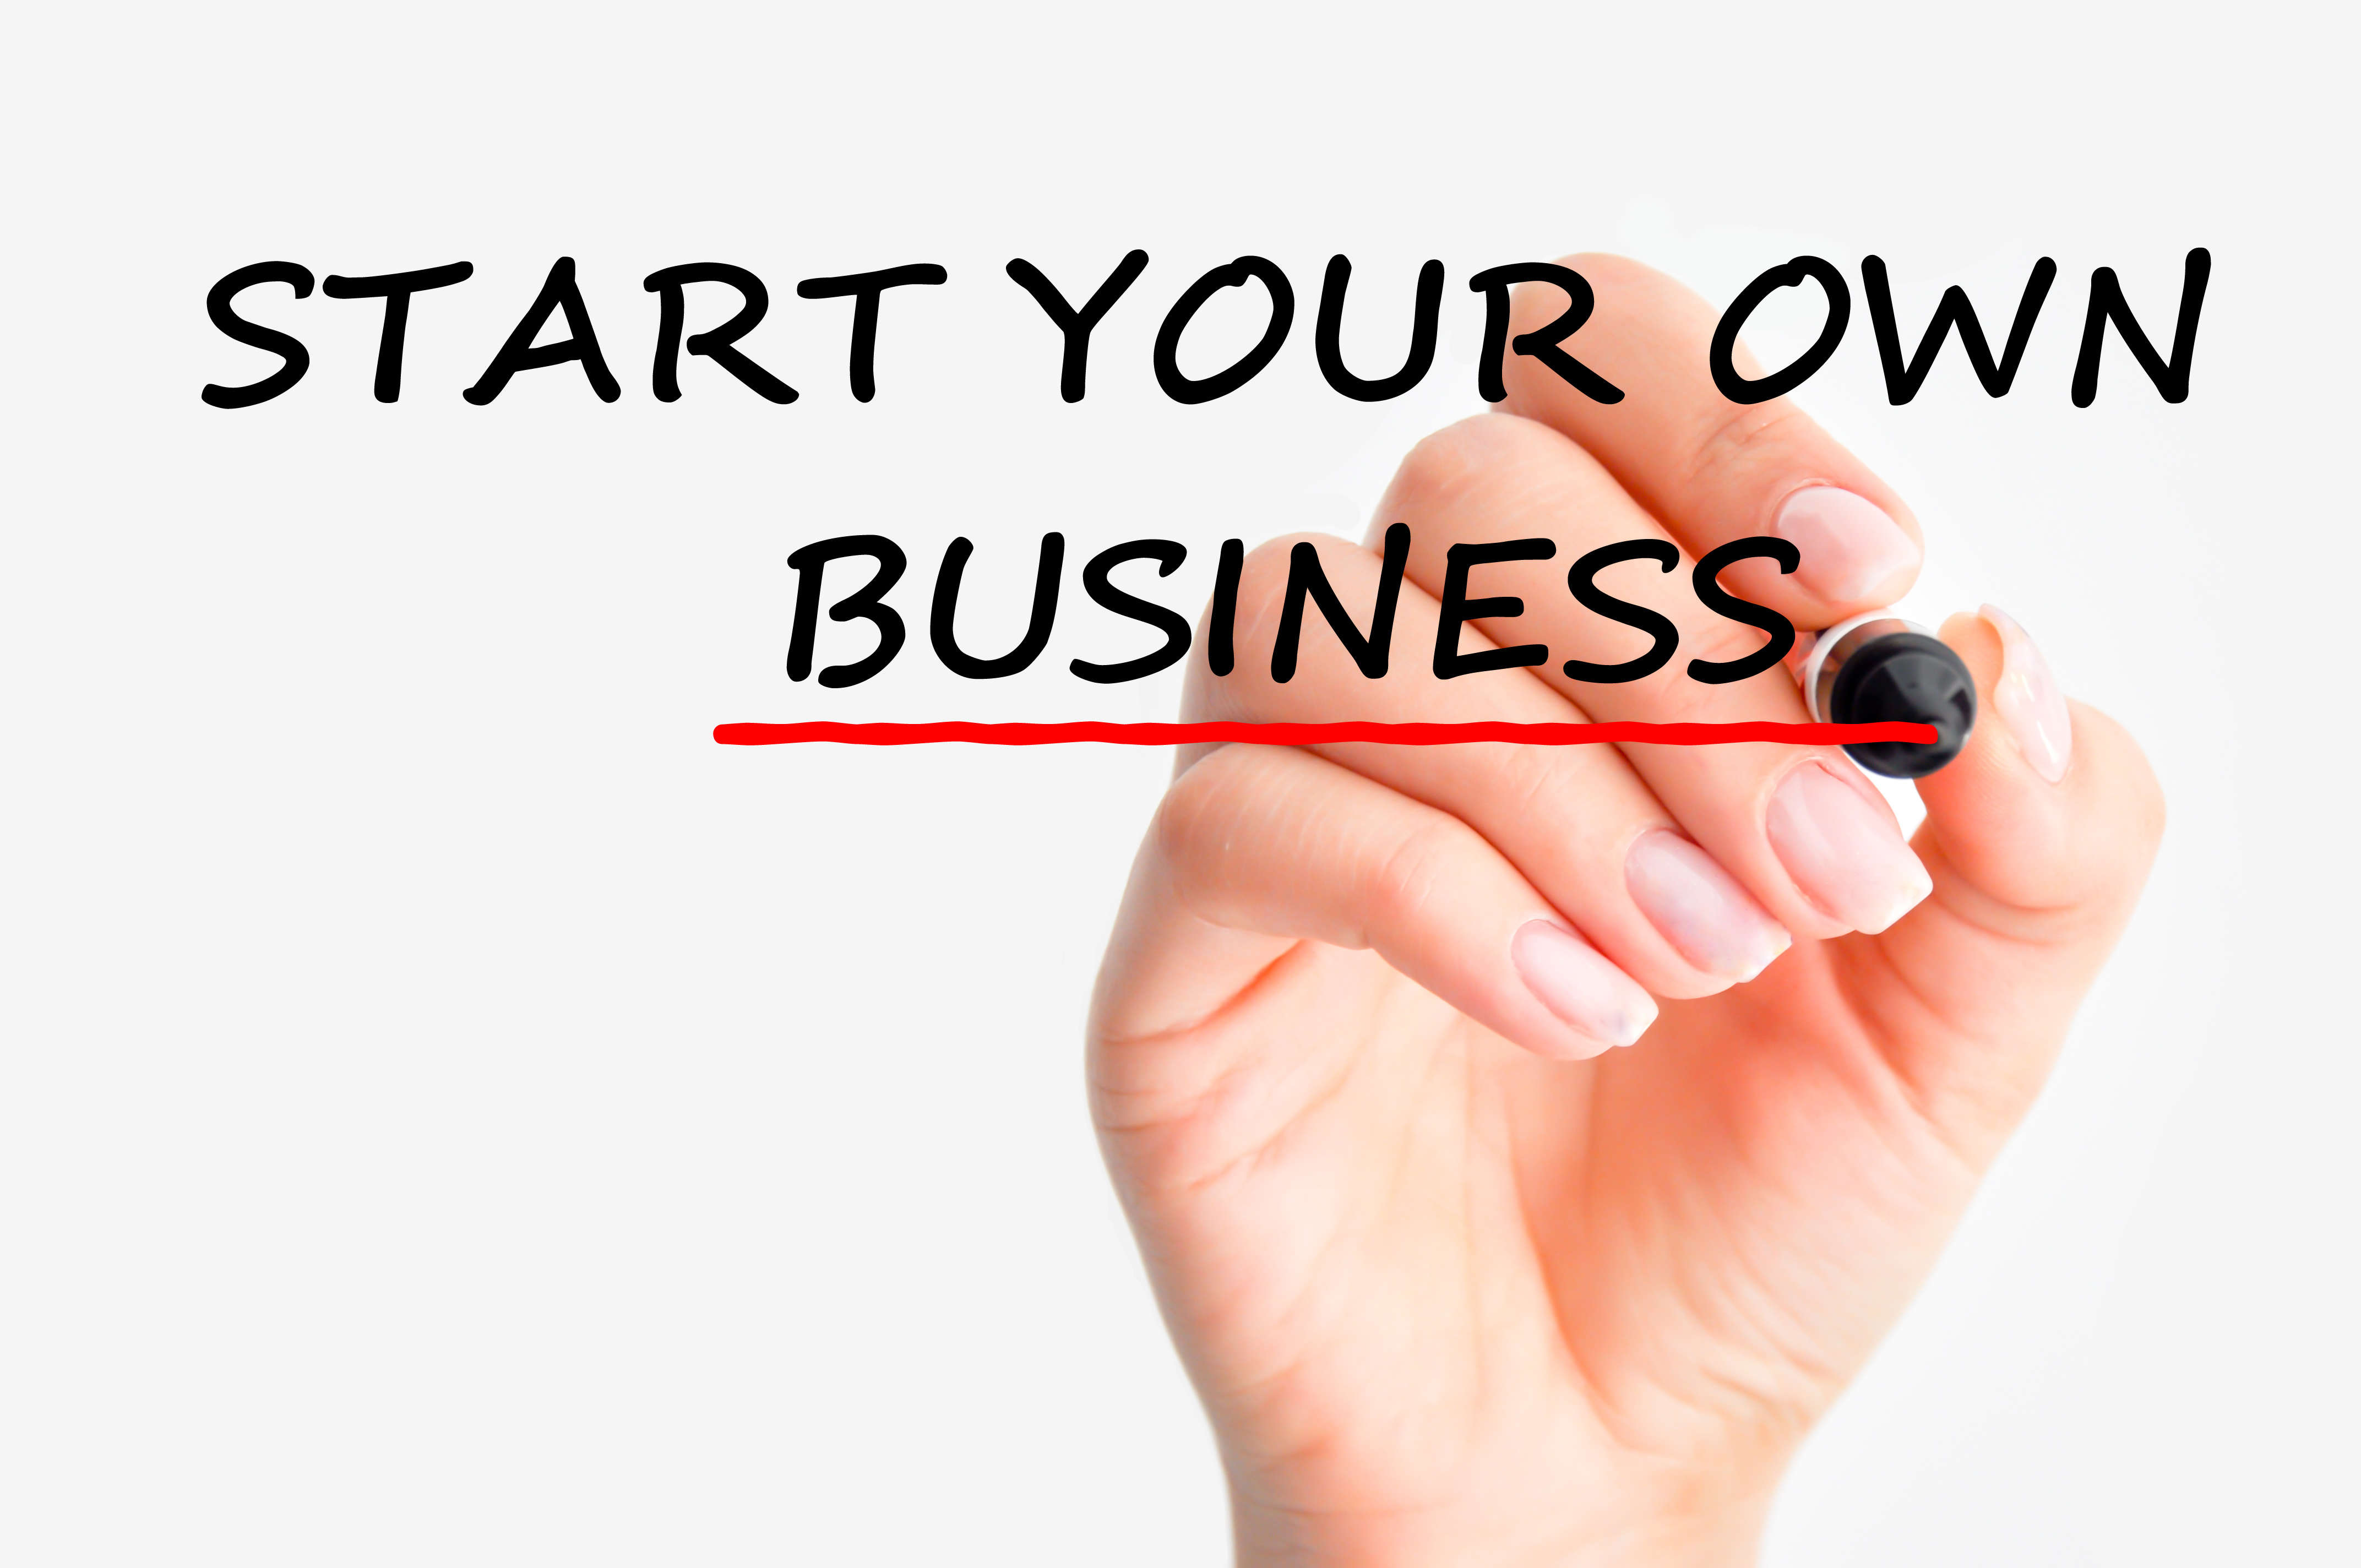 Setting up your own business needs planning & confidence